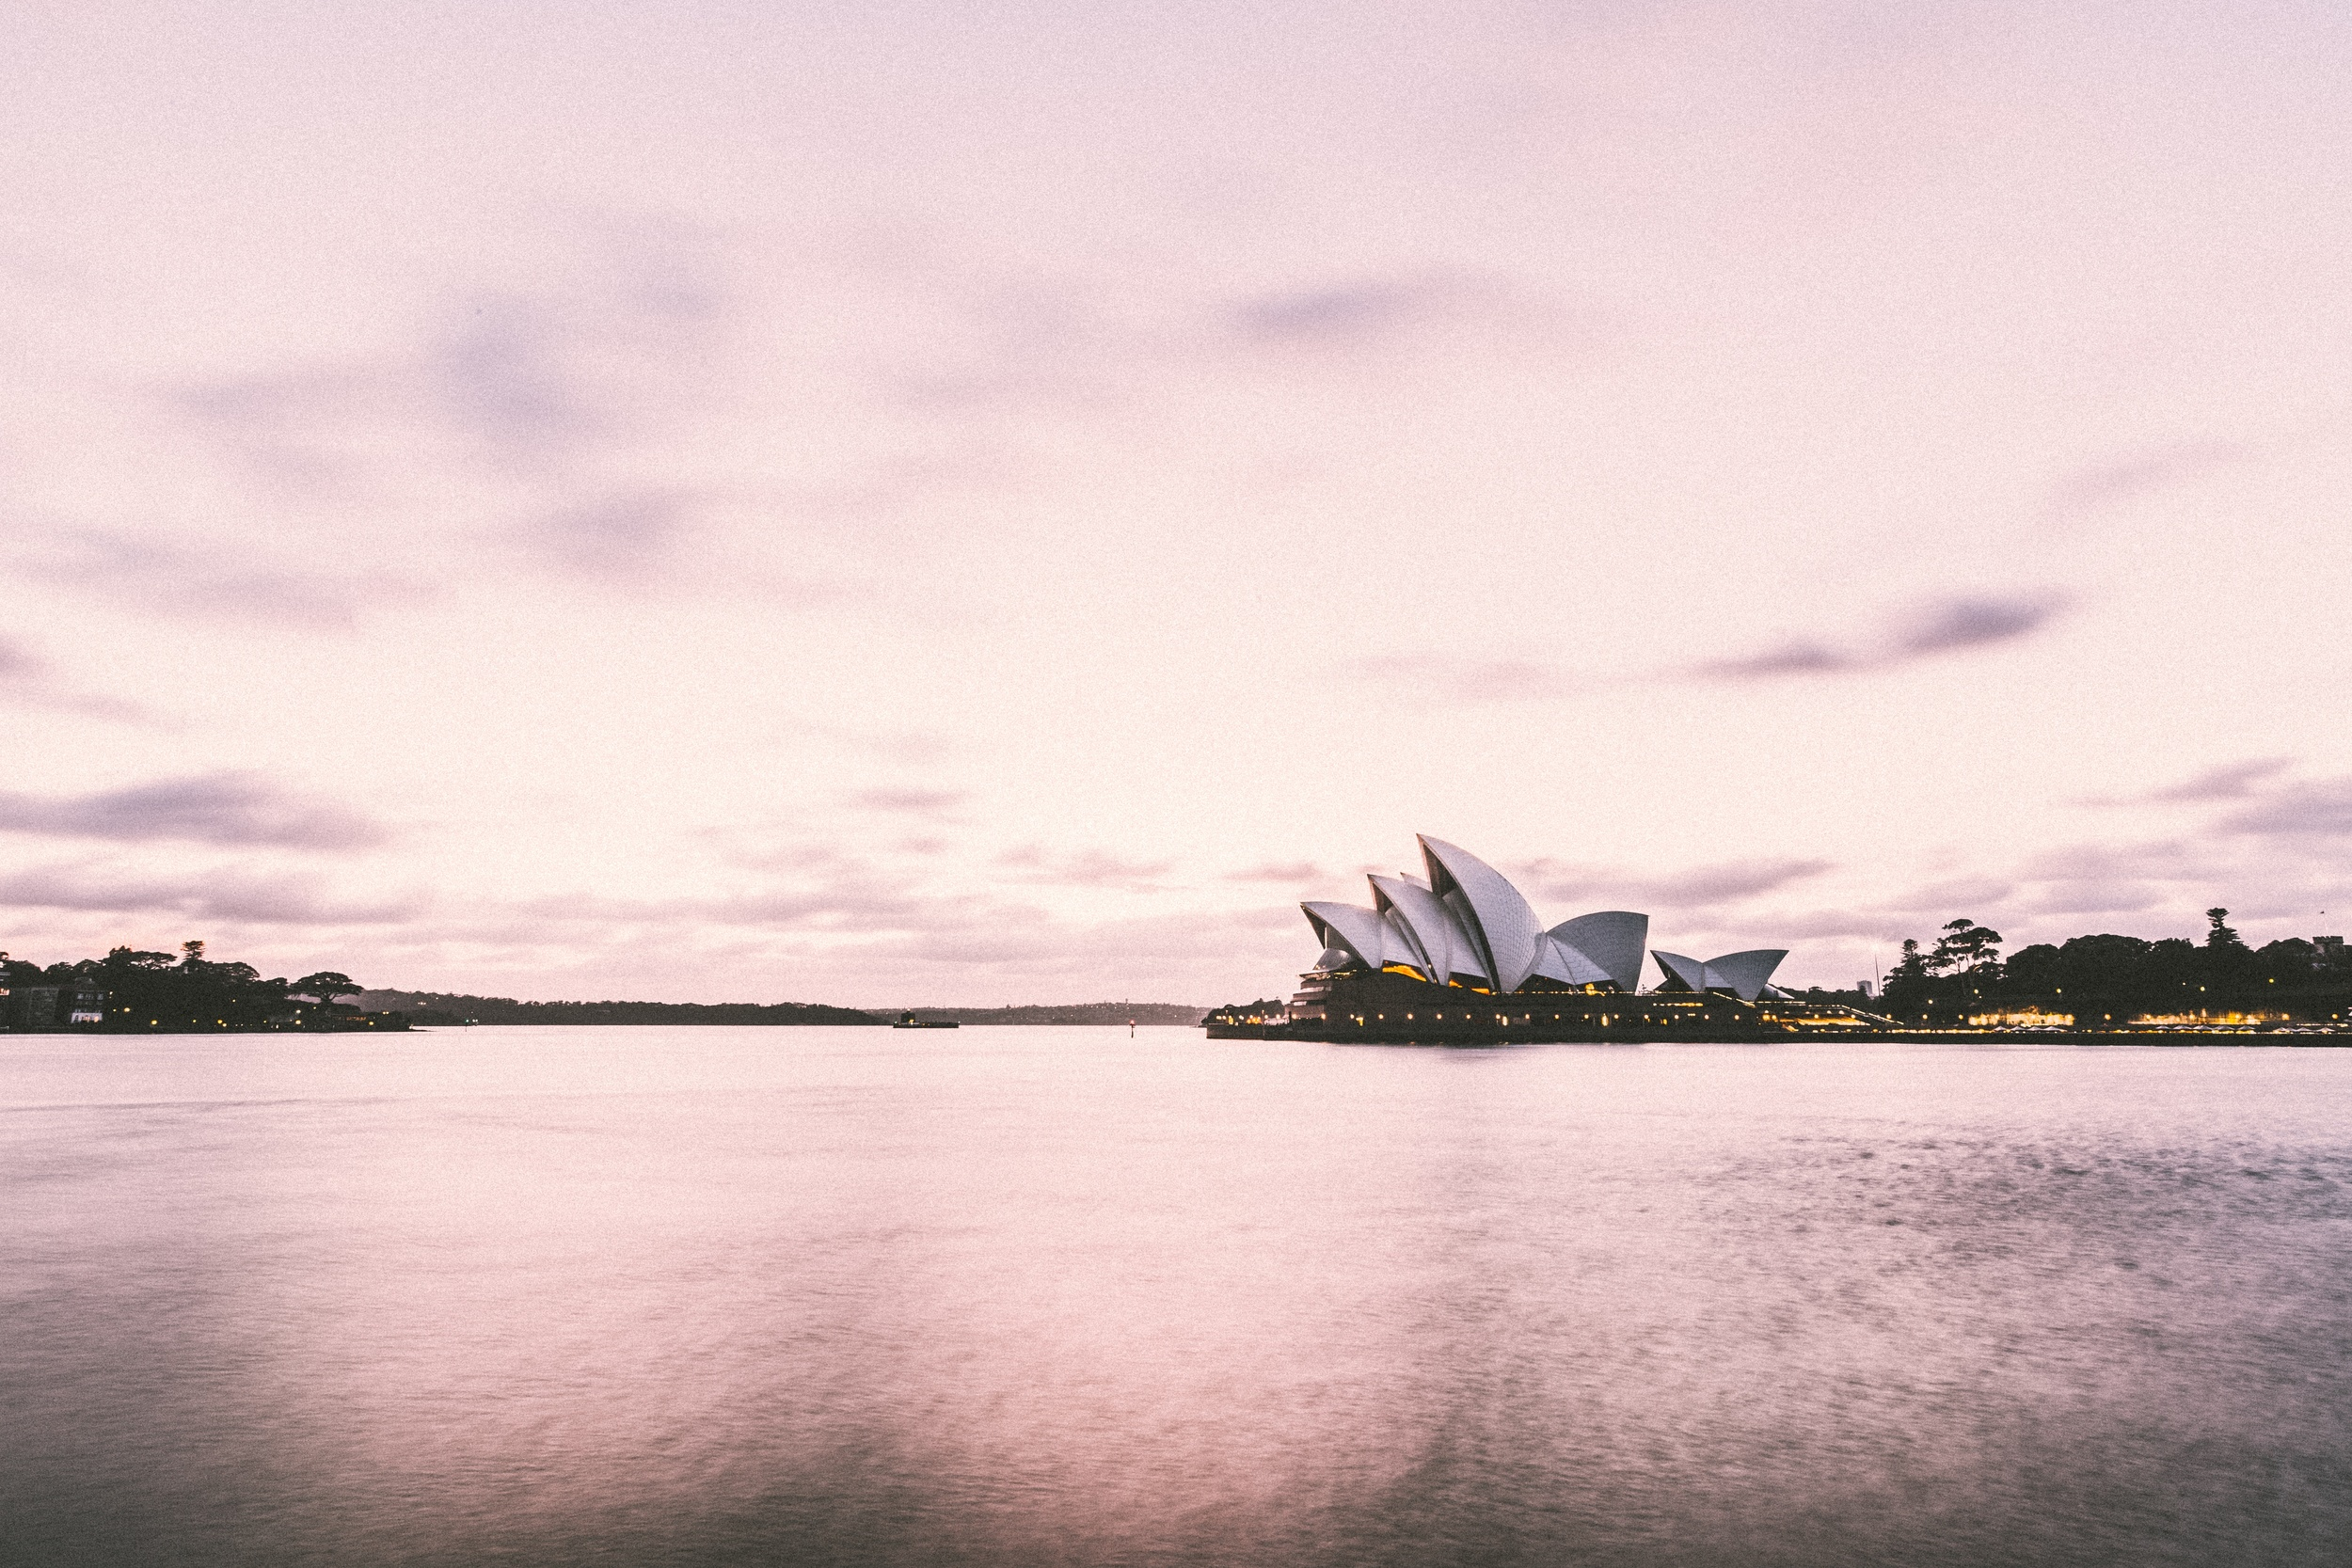 Sydney Opera House every day during your commute?